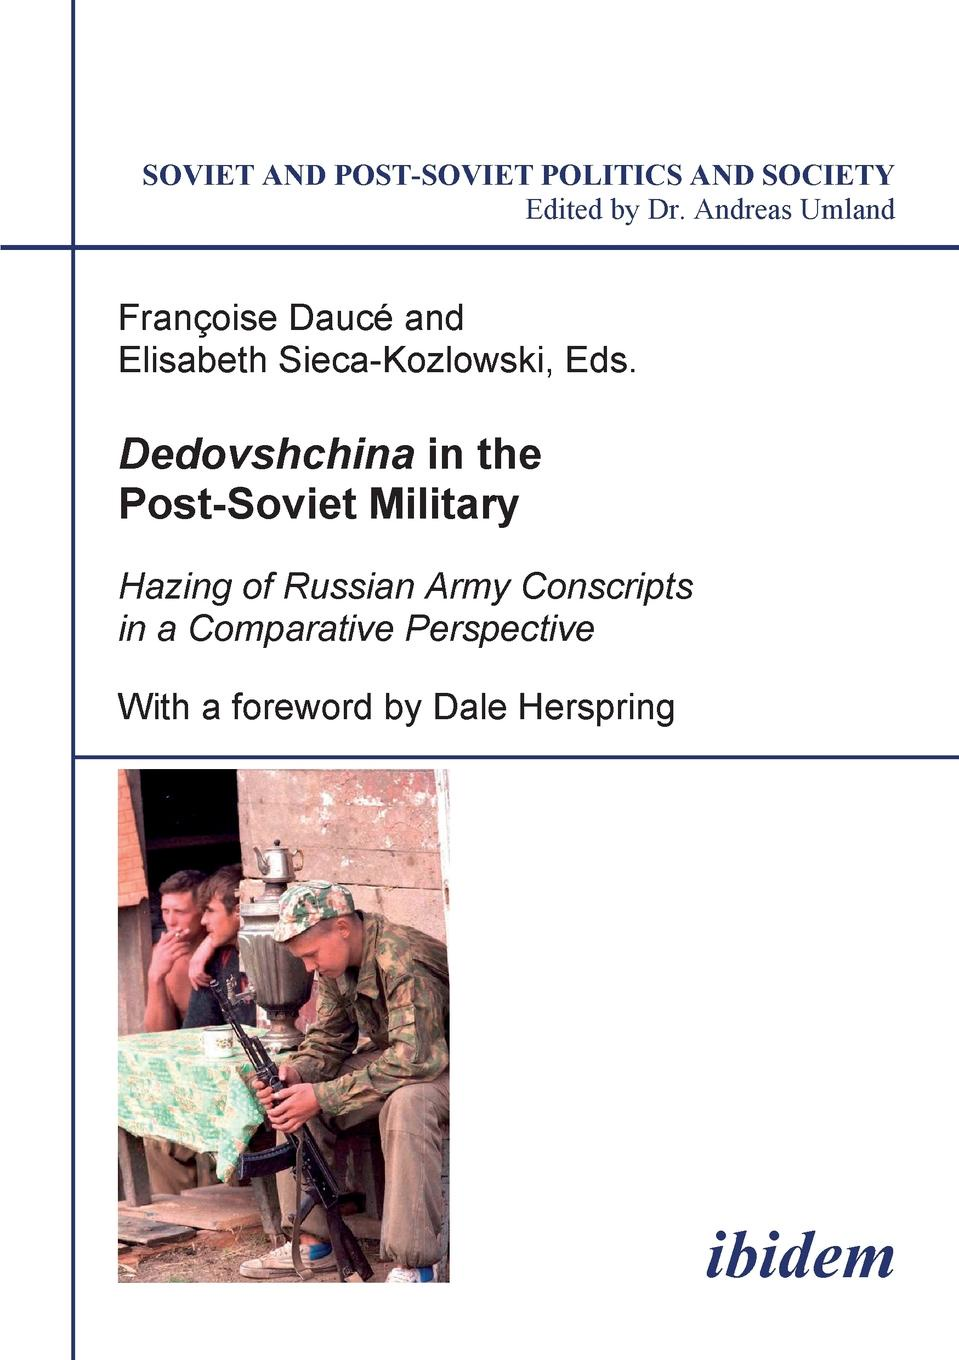 Dedovshchina in the Post-Soviet Military. Hazing of Russian Army Conscripts in a Comparative Perspective. With a foreword by Dale Herspring skmei 1040 double movt led sports watch military army wristwatch with alarm week chronograph function 50m water resistant